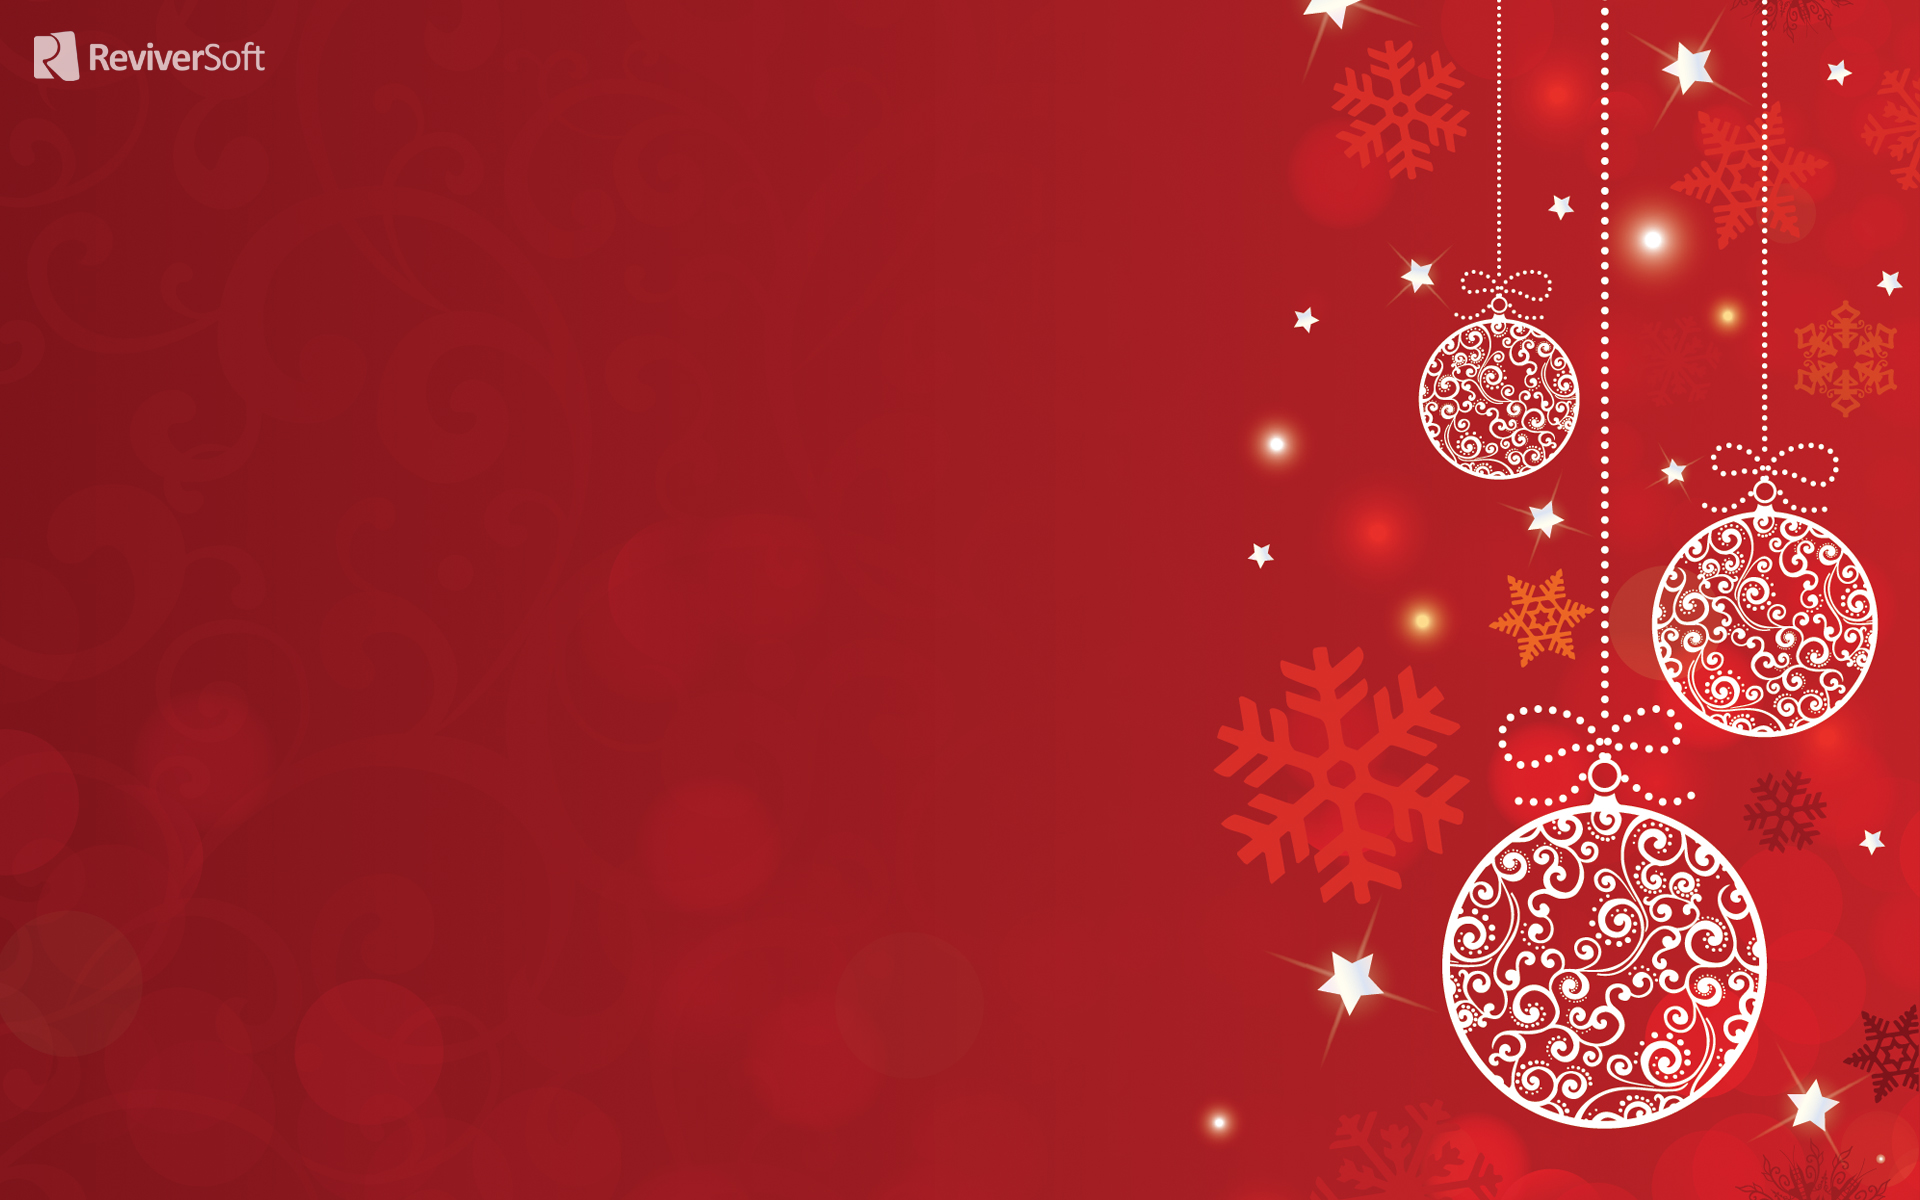 Where can I find holiday themes and wallpaper for Windows 8 earlier 1920x1200